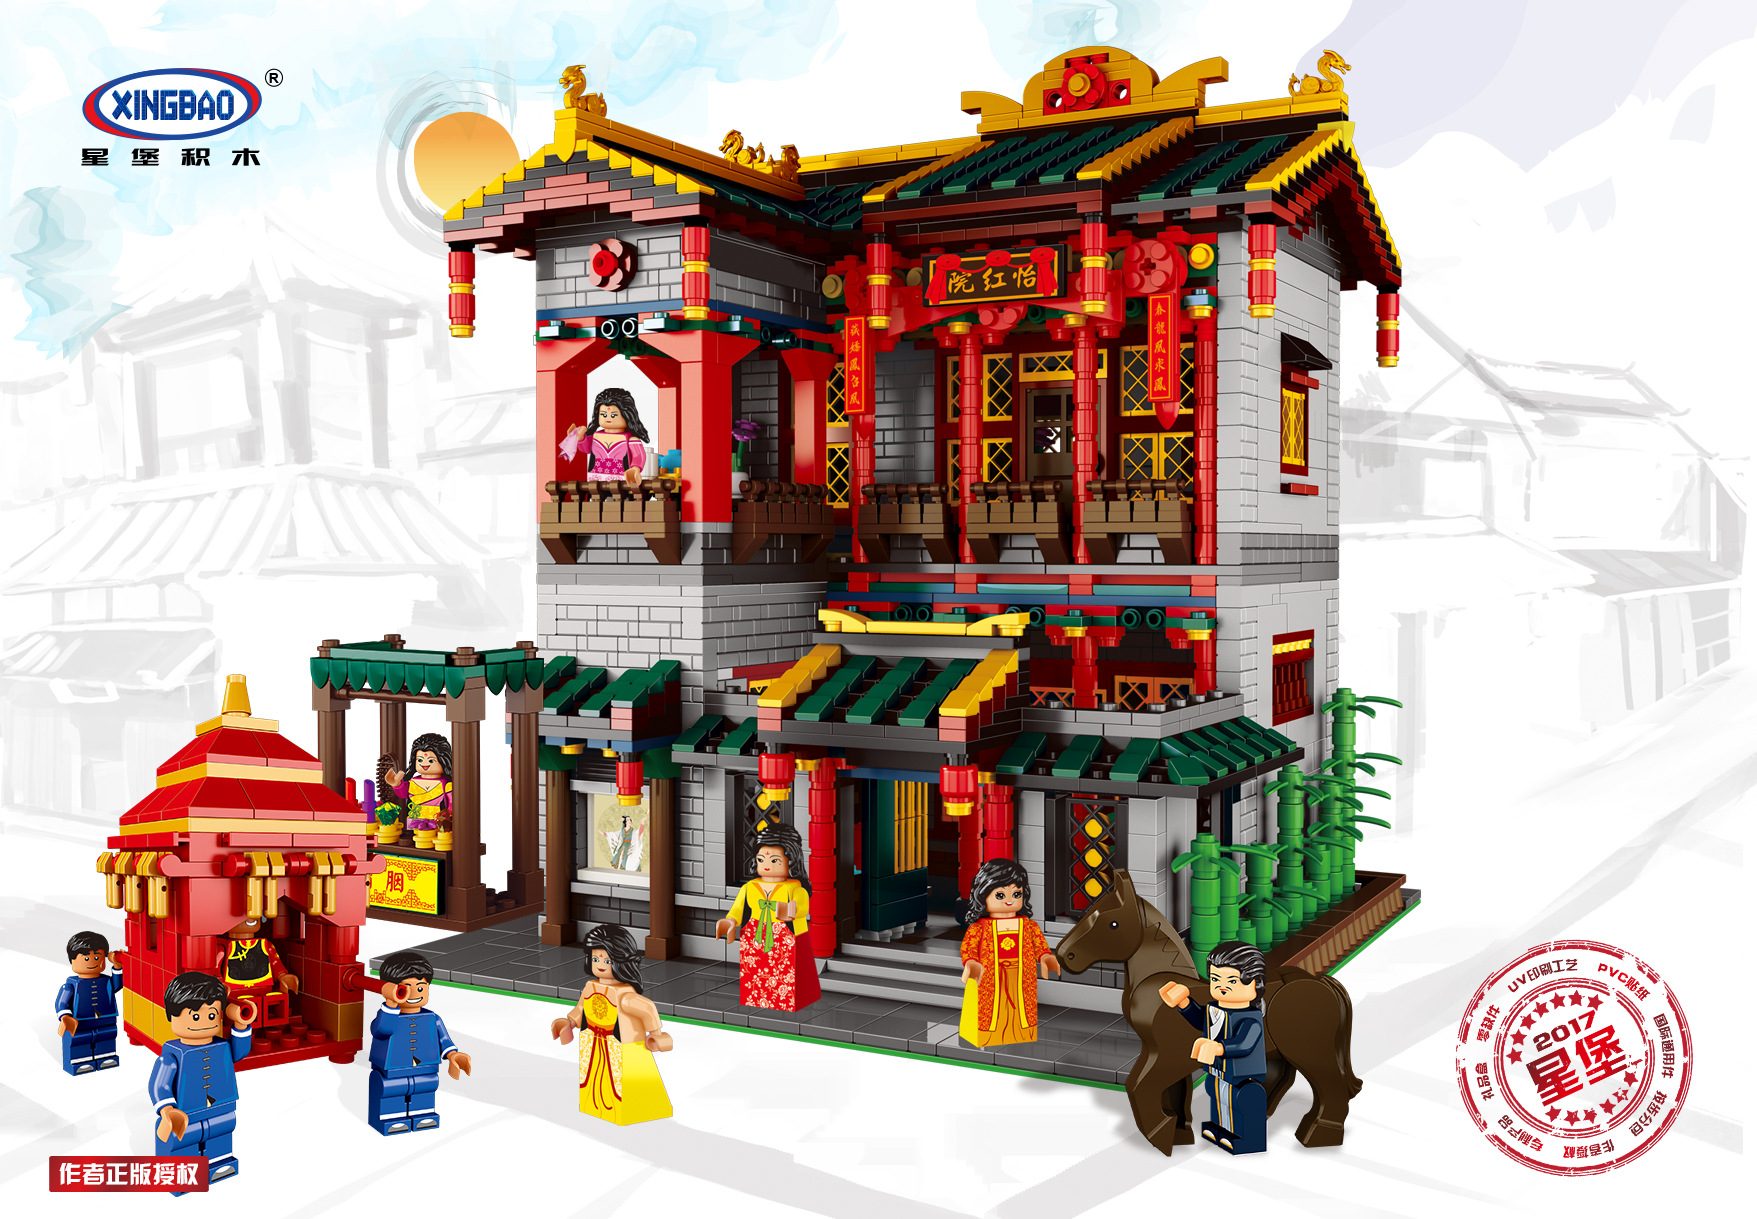 XINGBAO Xb01003 Chinese Street View Xin Ya Xuan Fight Inserted Architecture Small Particles Building Blocks Children'S Education